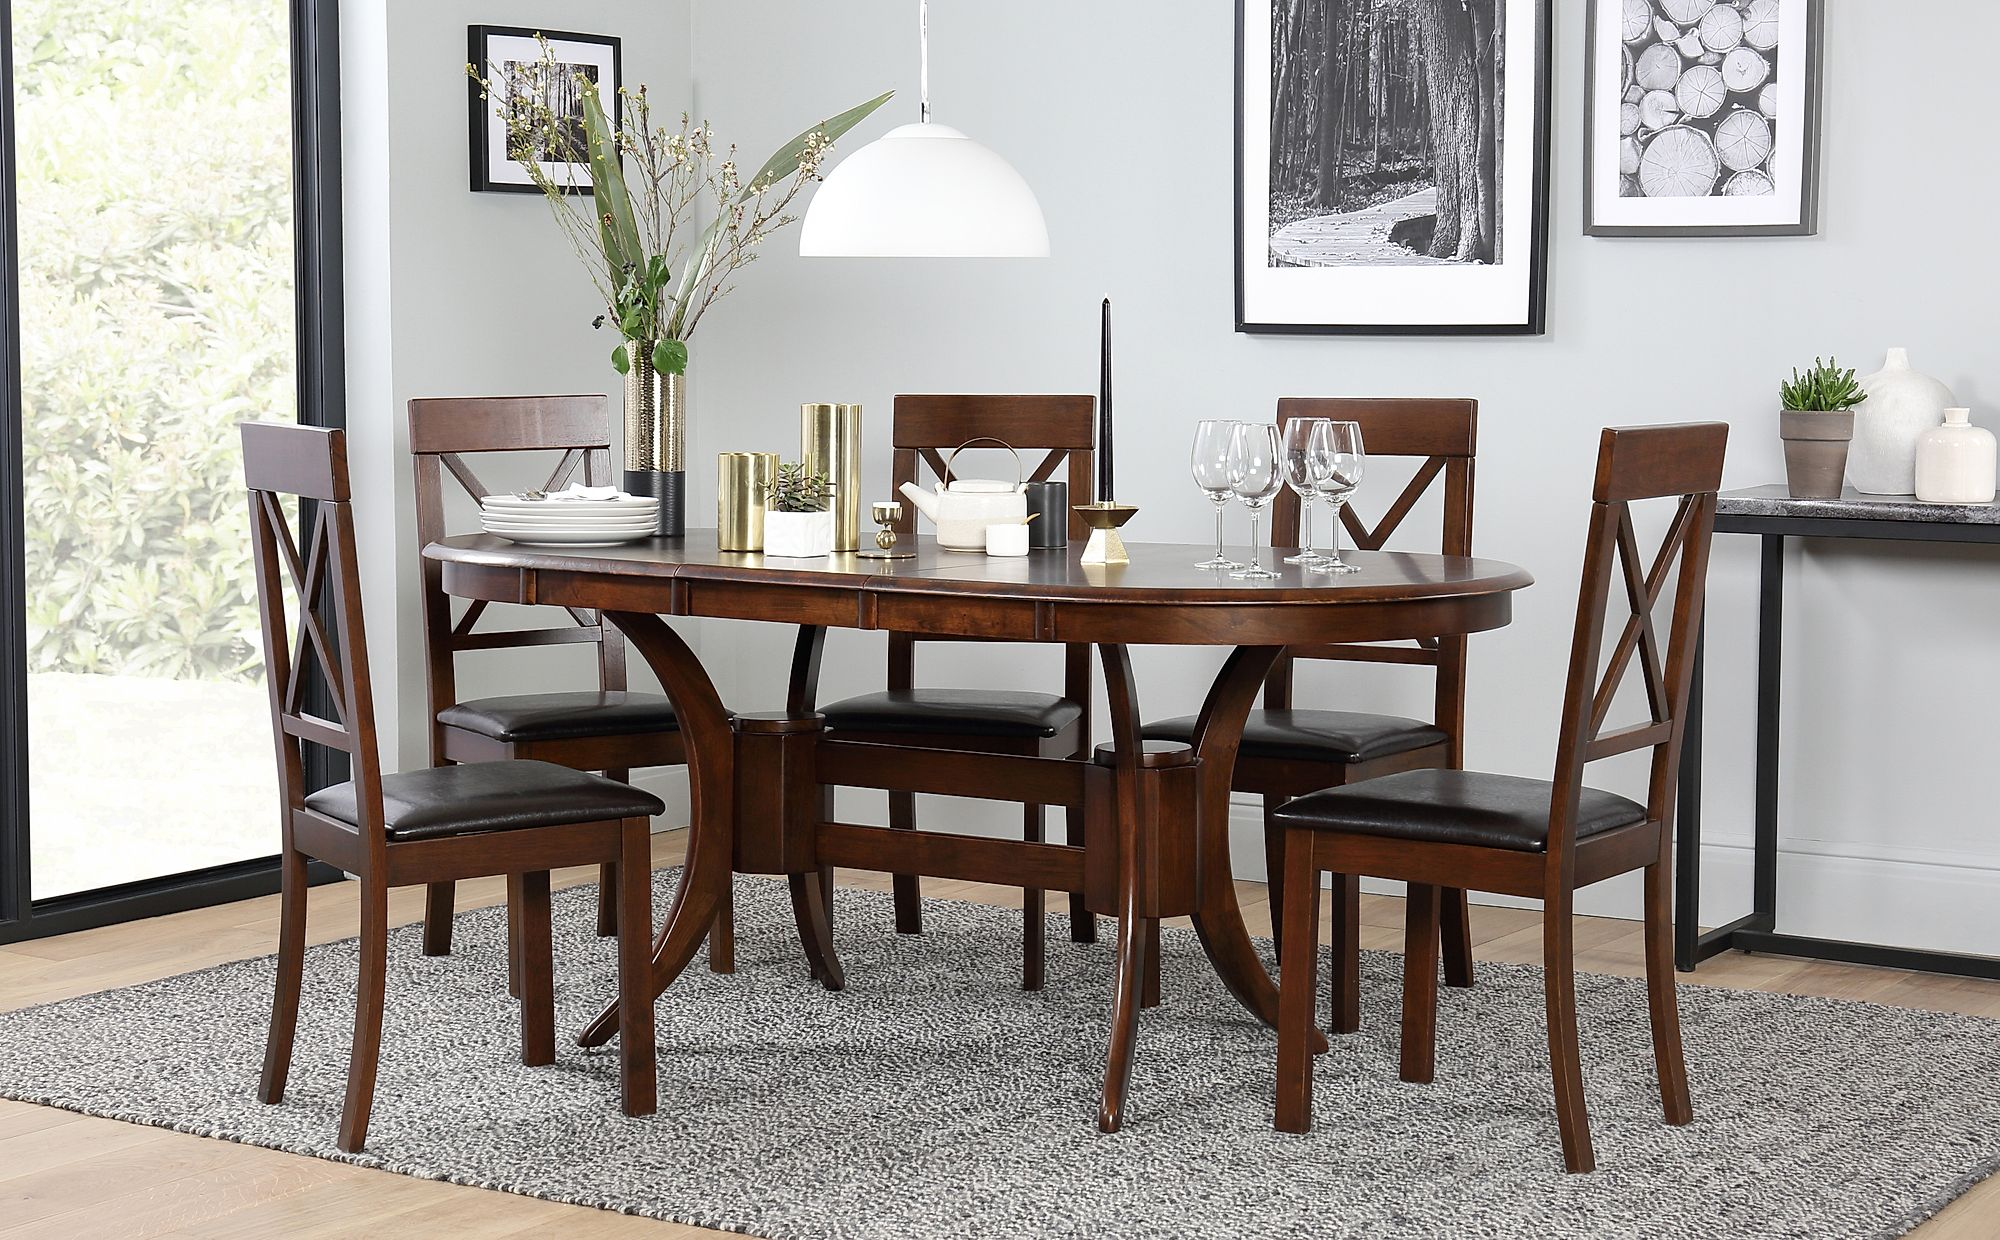 Townhouse Oval Dark Wood Extending Dining Table with 6 ...